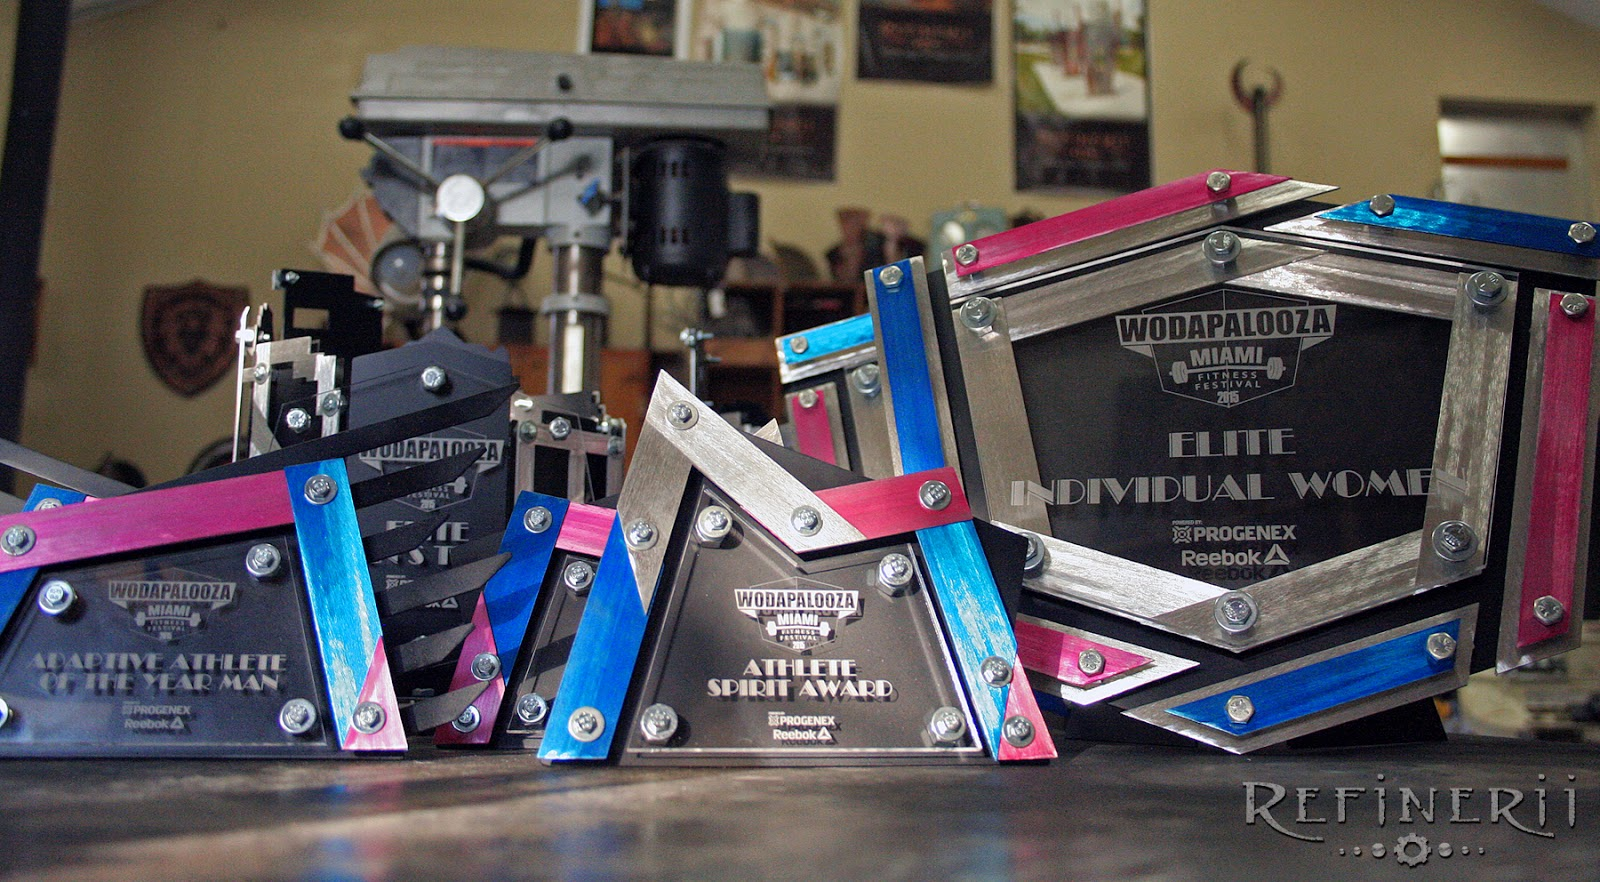 Custom Metal Trophies created for the Wodapalooza Fitness Festival 2015 in Miami.  www.refinerii.net